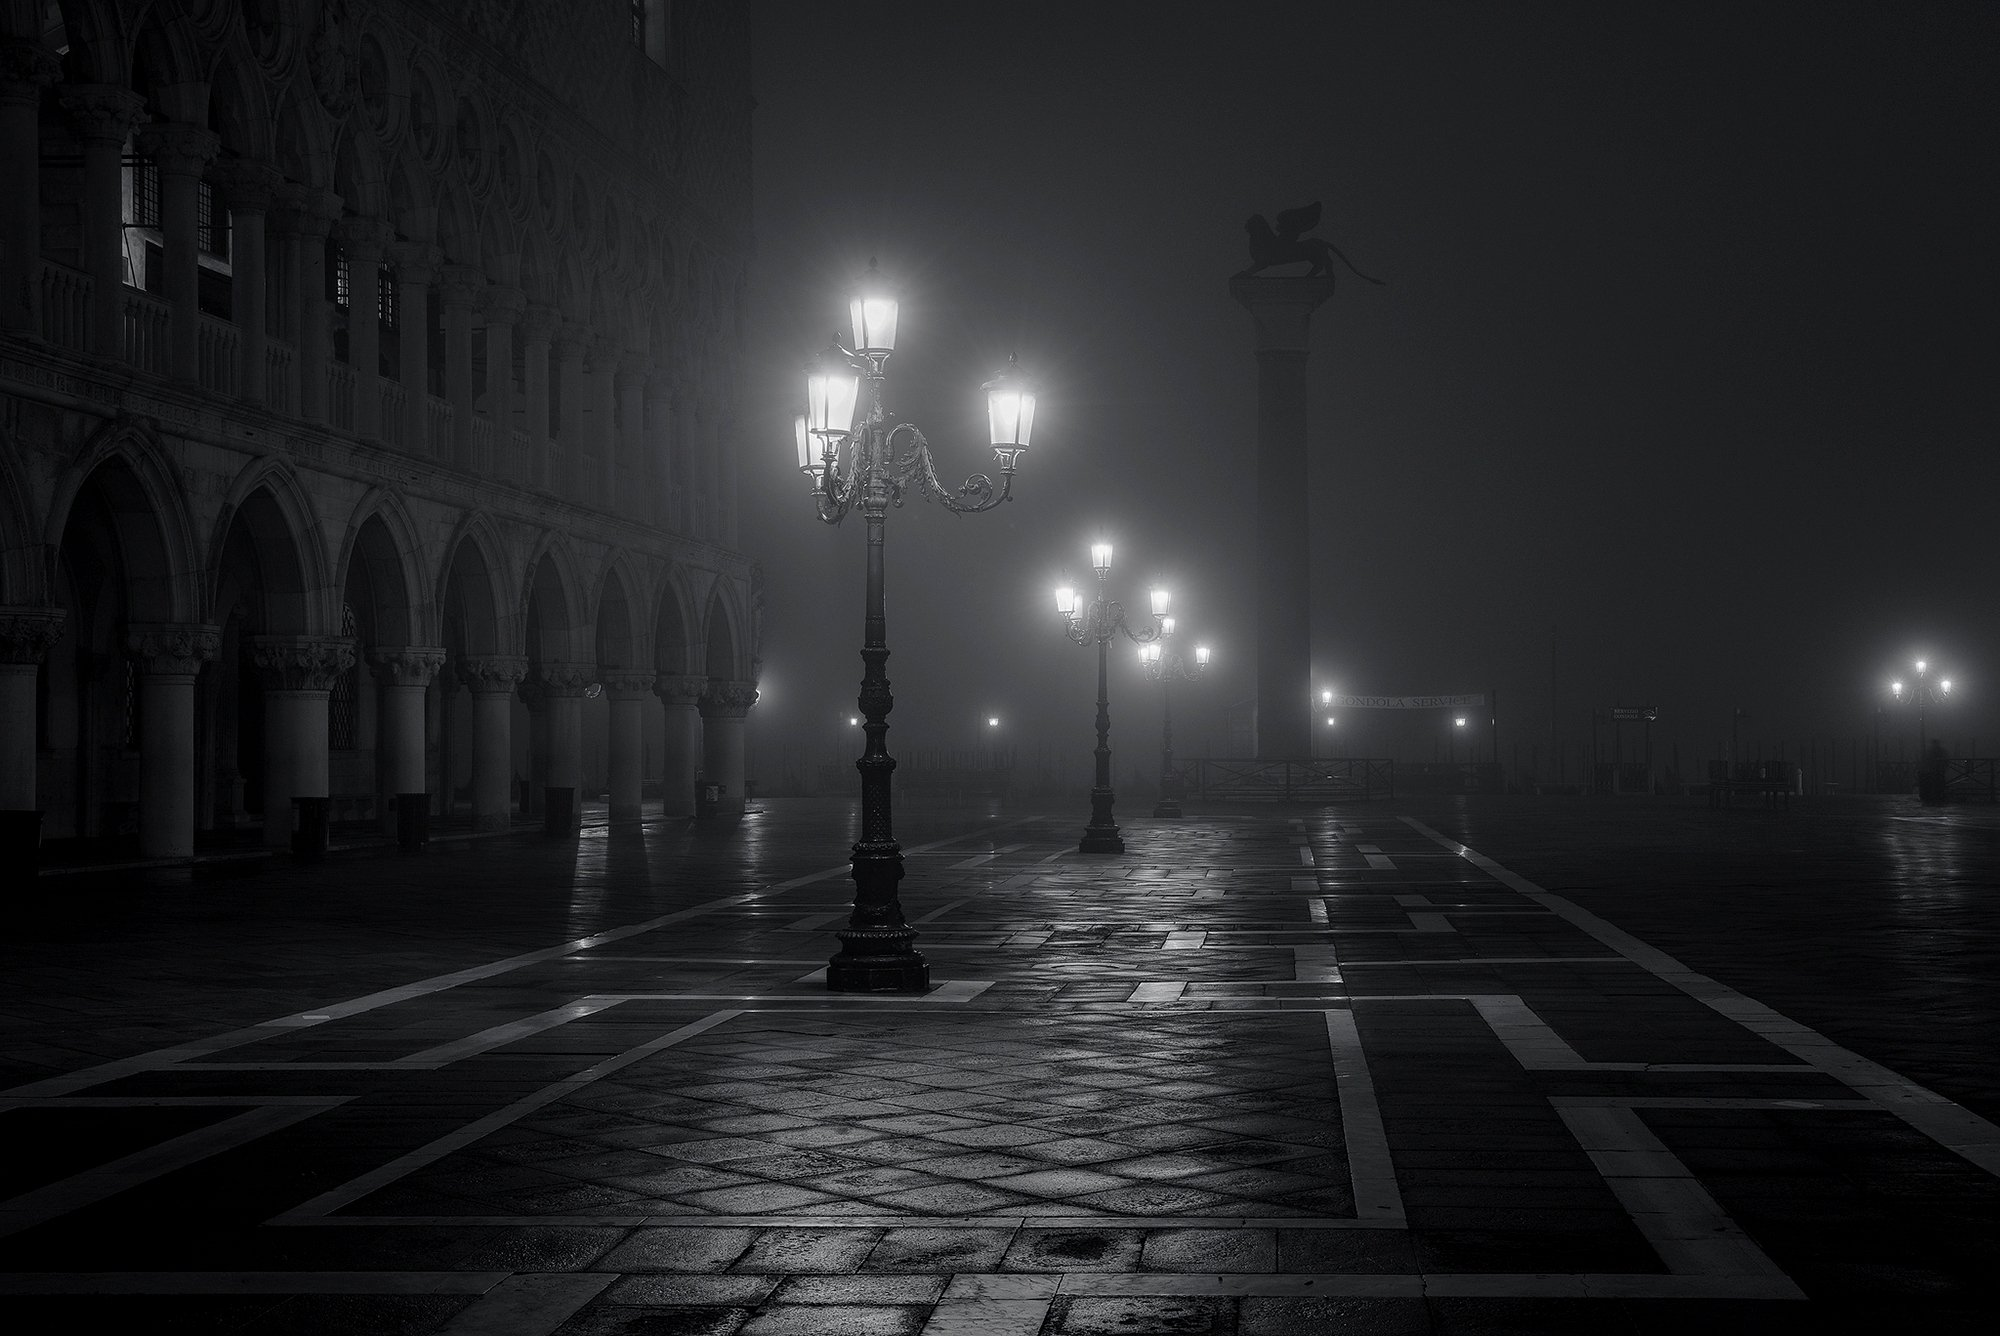 Venice Italy Piazza San Marco city night fog lights black and white mood